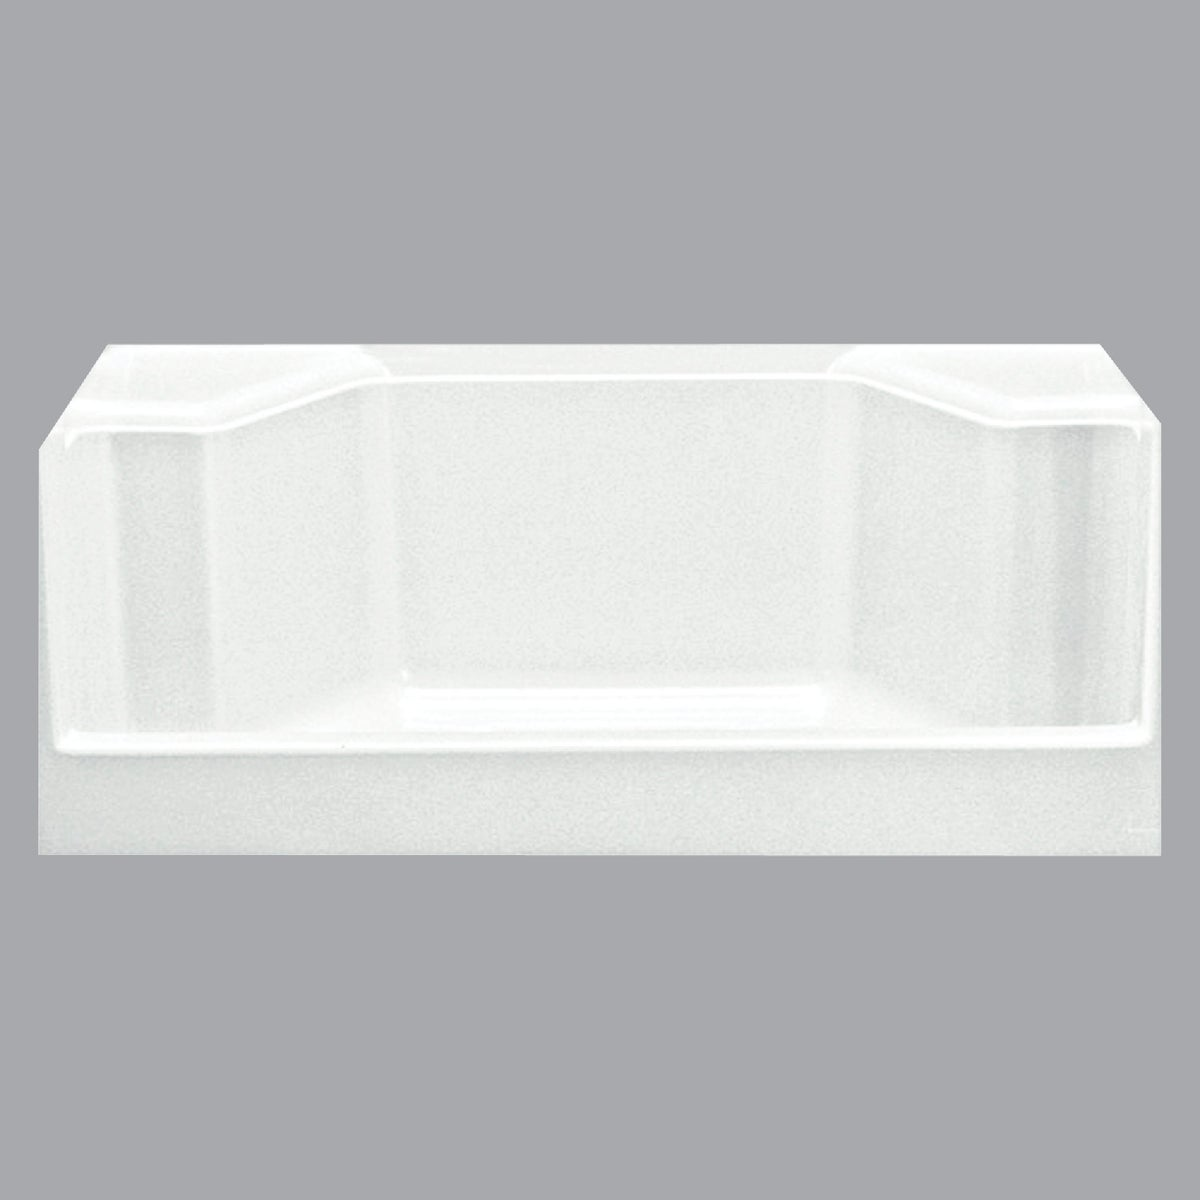 "48"" WHITE SHOWER BASE - 62031100-0 by Sterling Pbg/vikrell"